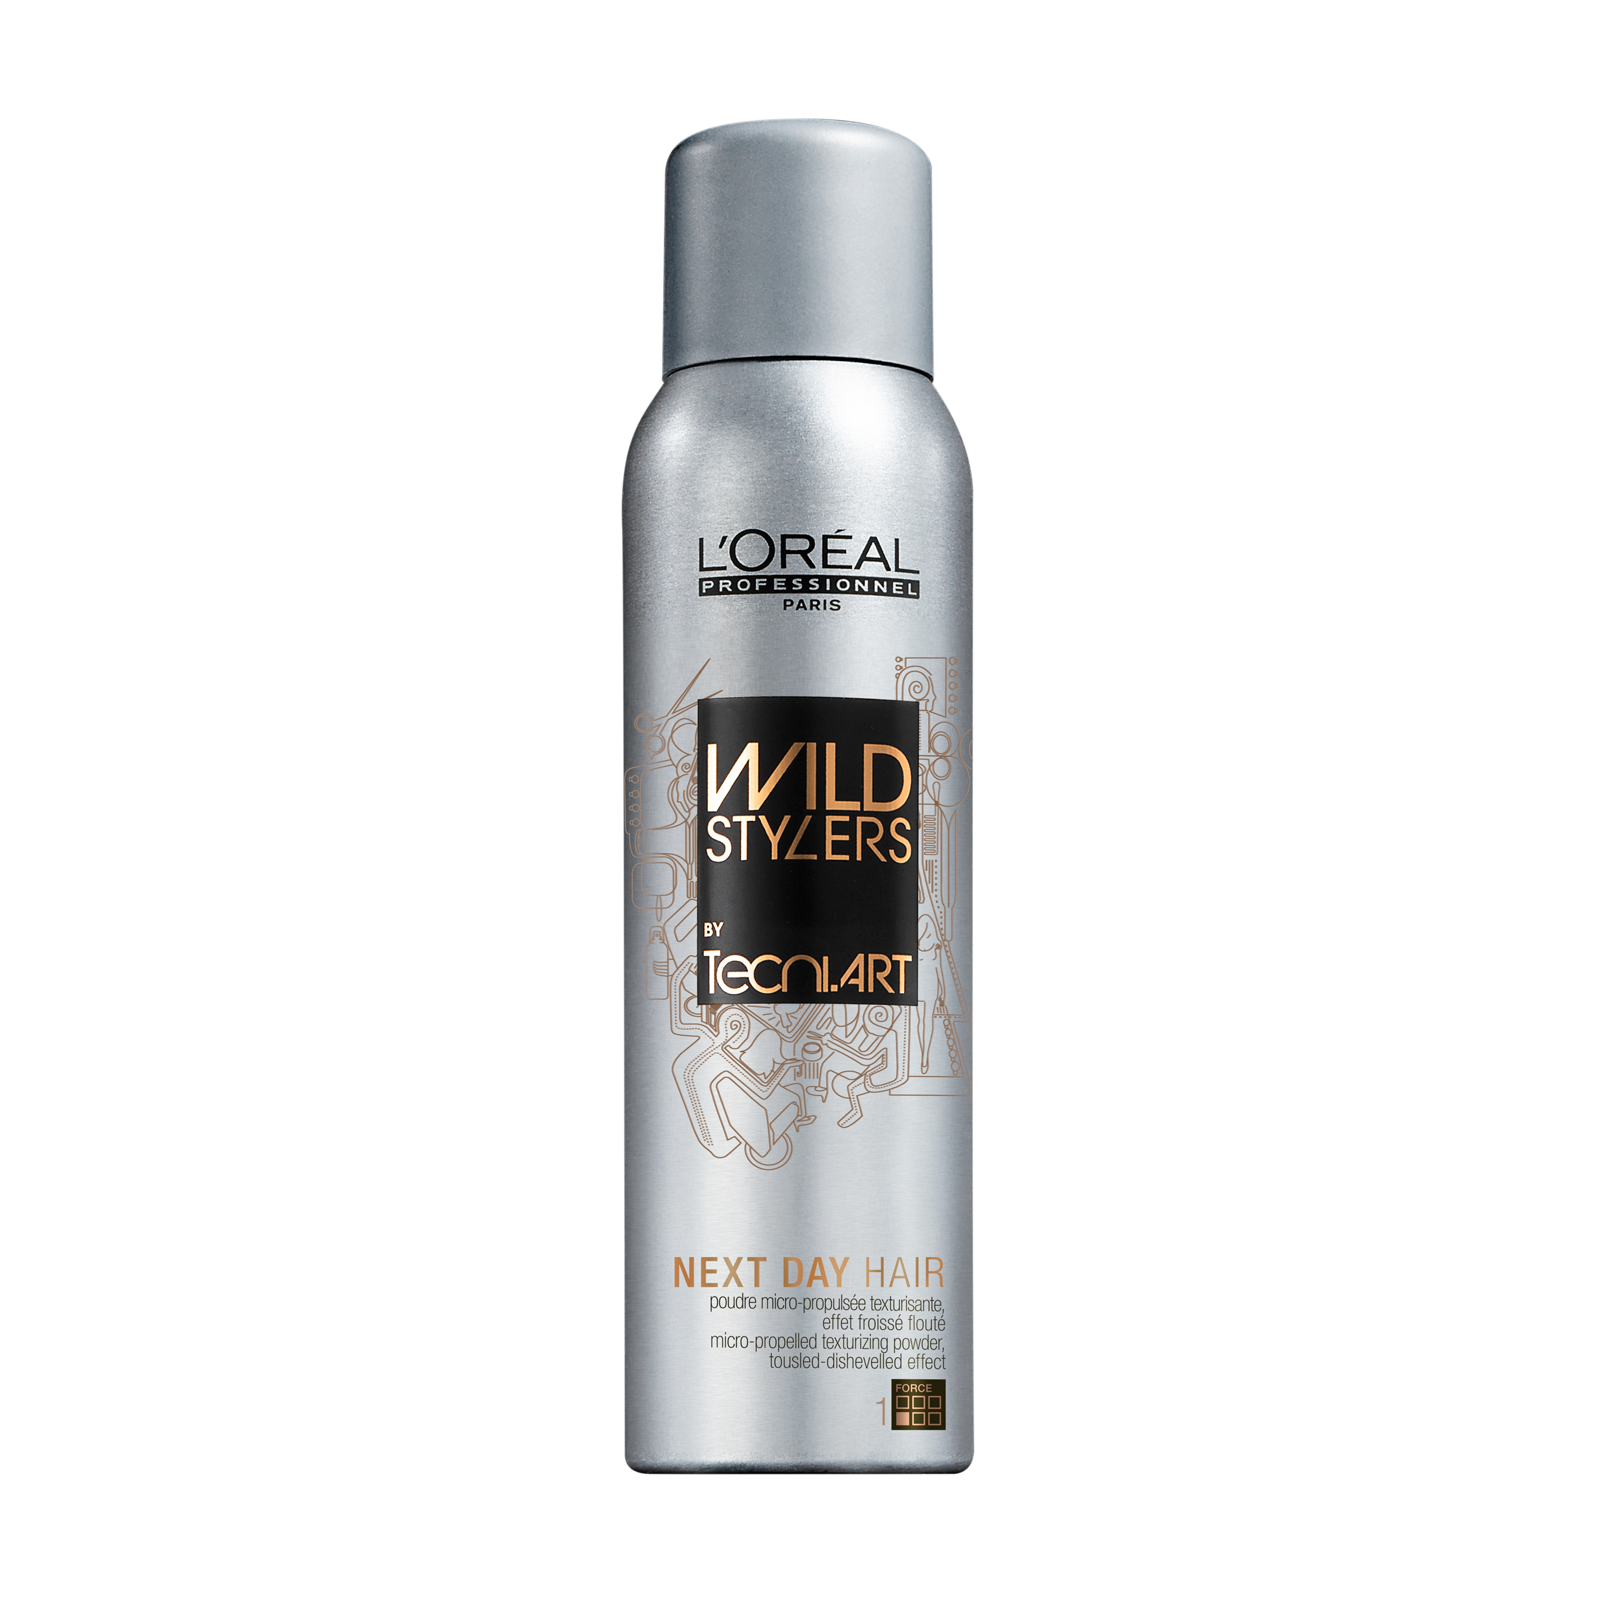 L__039_Or_eacute_al_Professionnel_Techni_Art_Wild_Stylers_Next_Day_Hair_250ml_1400673974